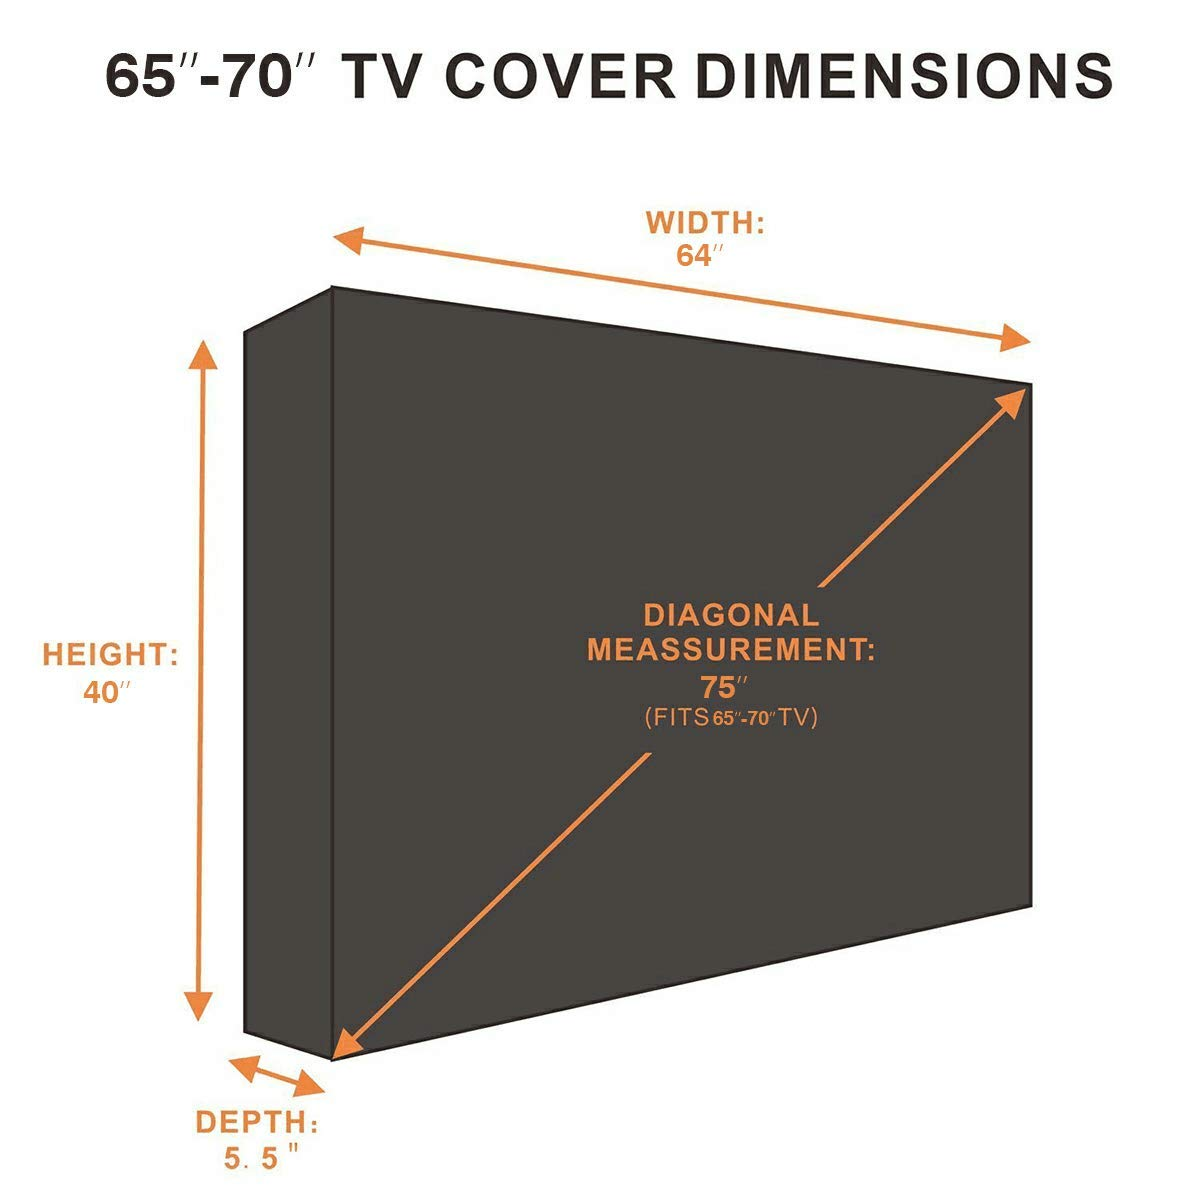 Outdoor TV Cover, Weatherproof Universal Protector for 65'' - 70'' LCD, LED, Plasma Television Screens. Dust-Proof with Bottom Seal and Soft Liner - Compatible with Standard Mounts and Stands